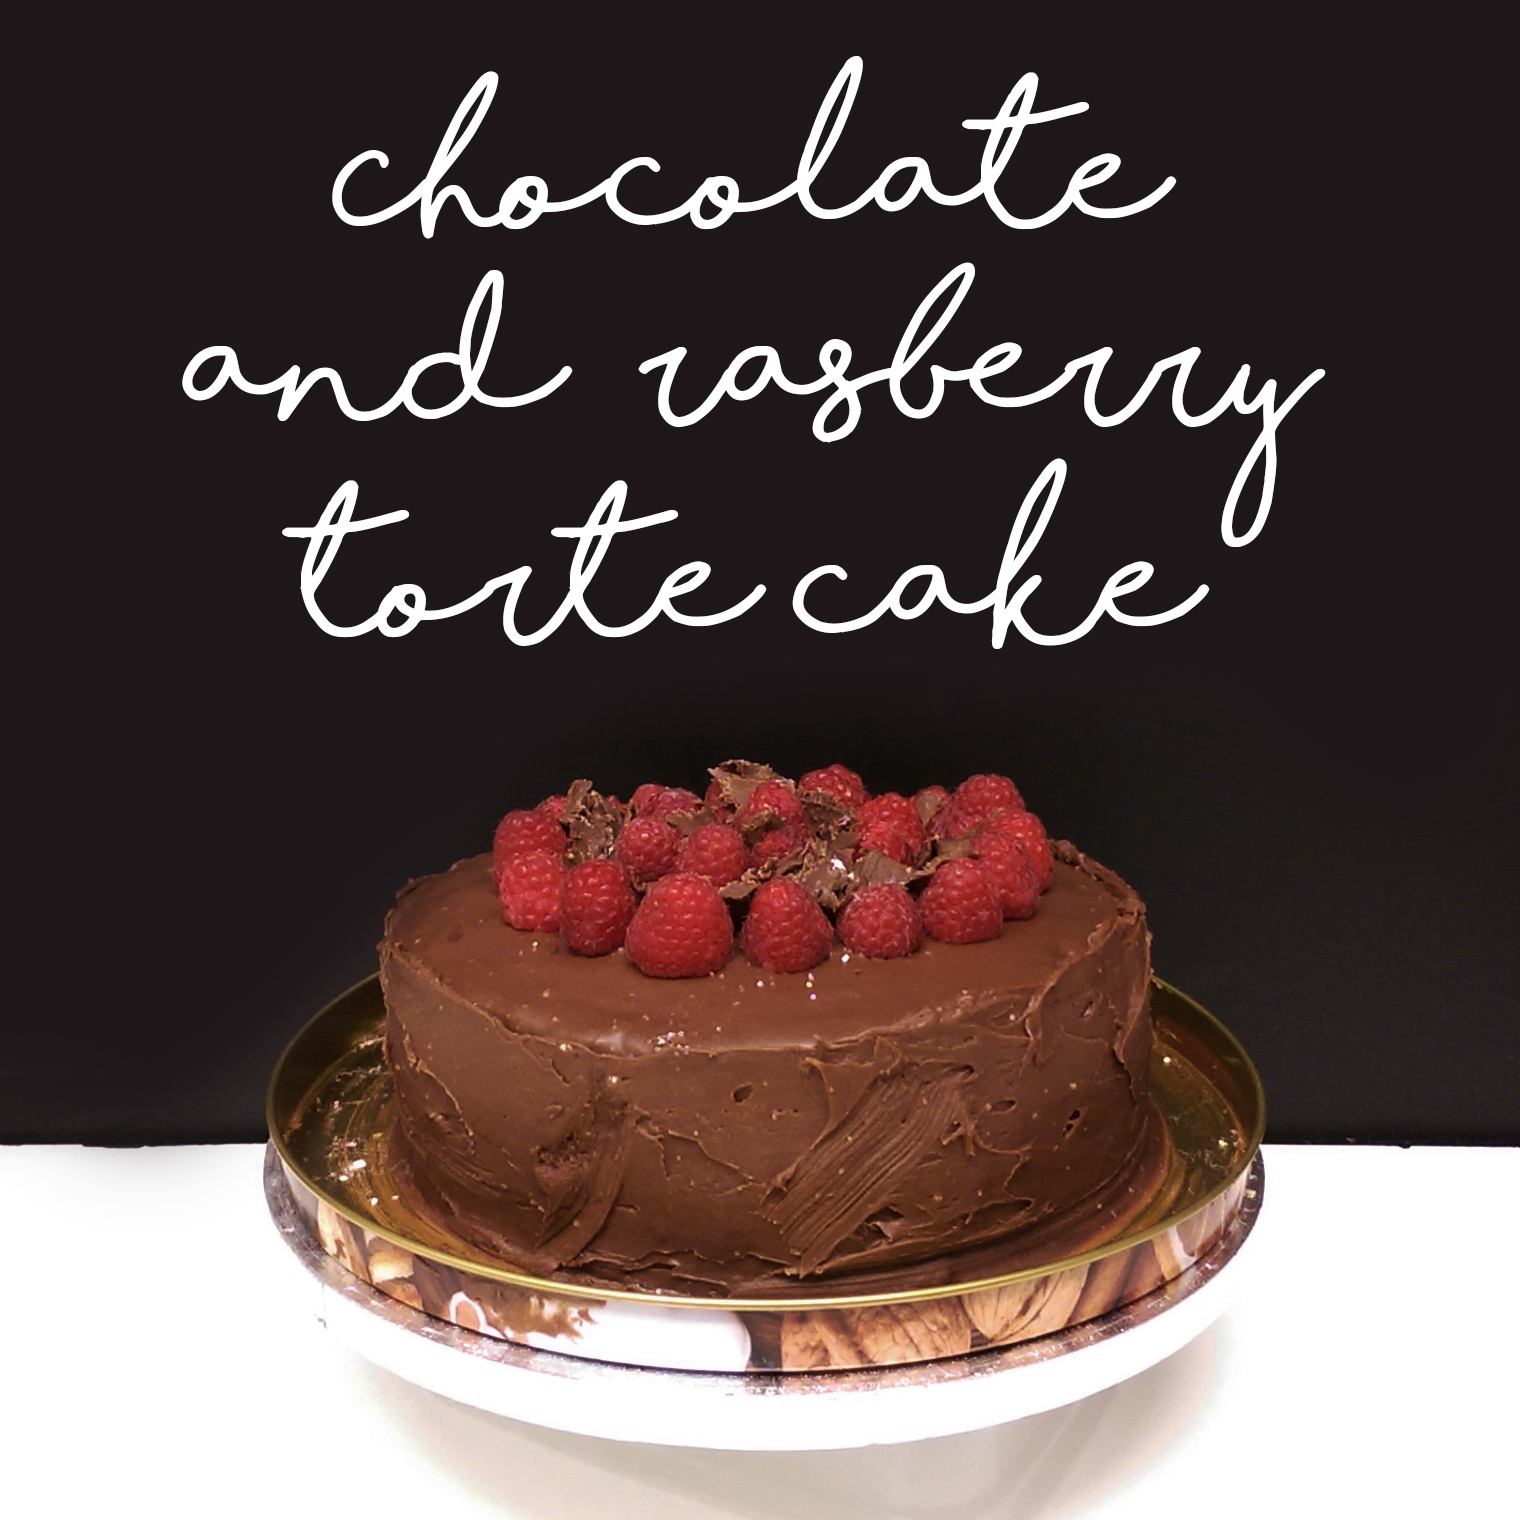 Chocolate and raspberry cake for the great british bake off